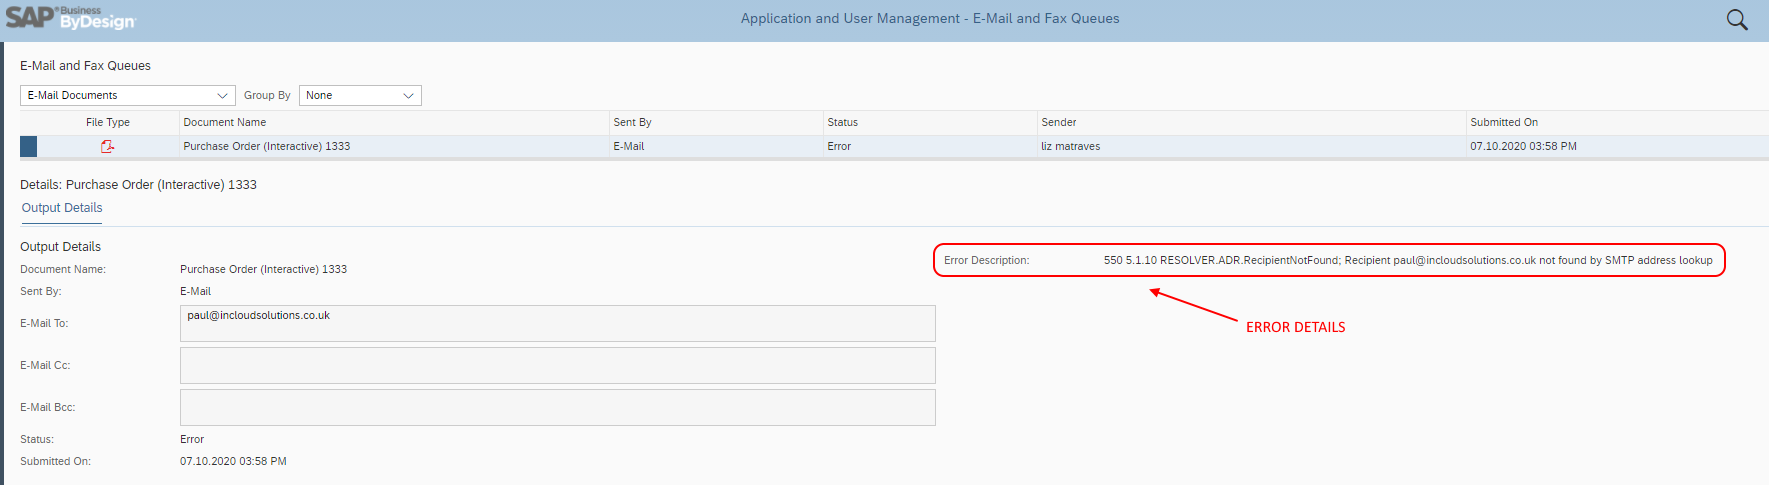 Application%20and%20User%20Management%20-%20Email%20and%20Fax%20Document%20Errors